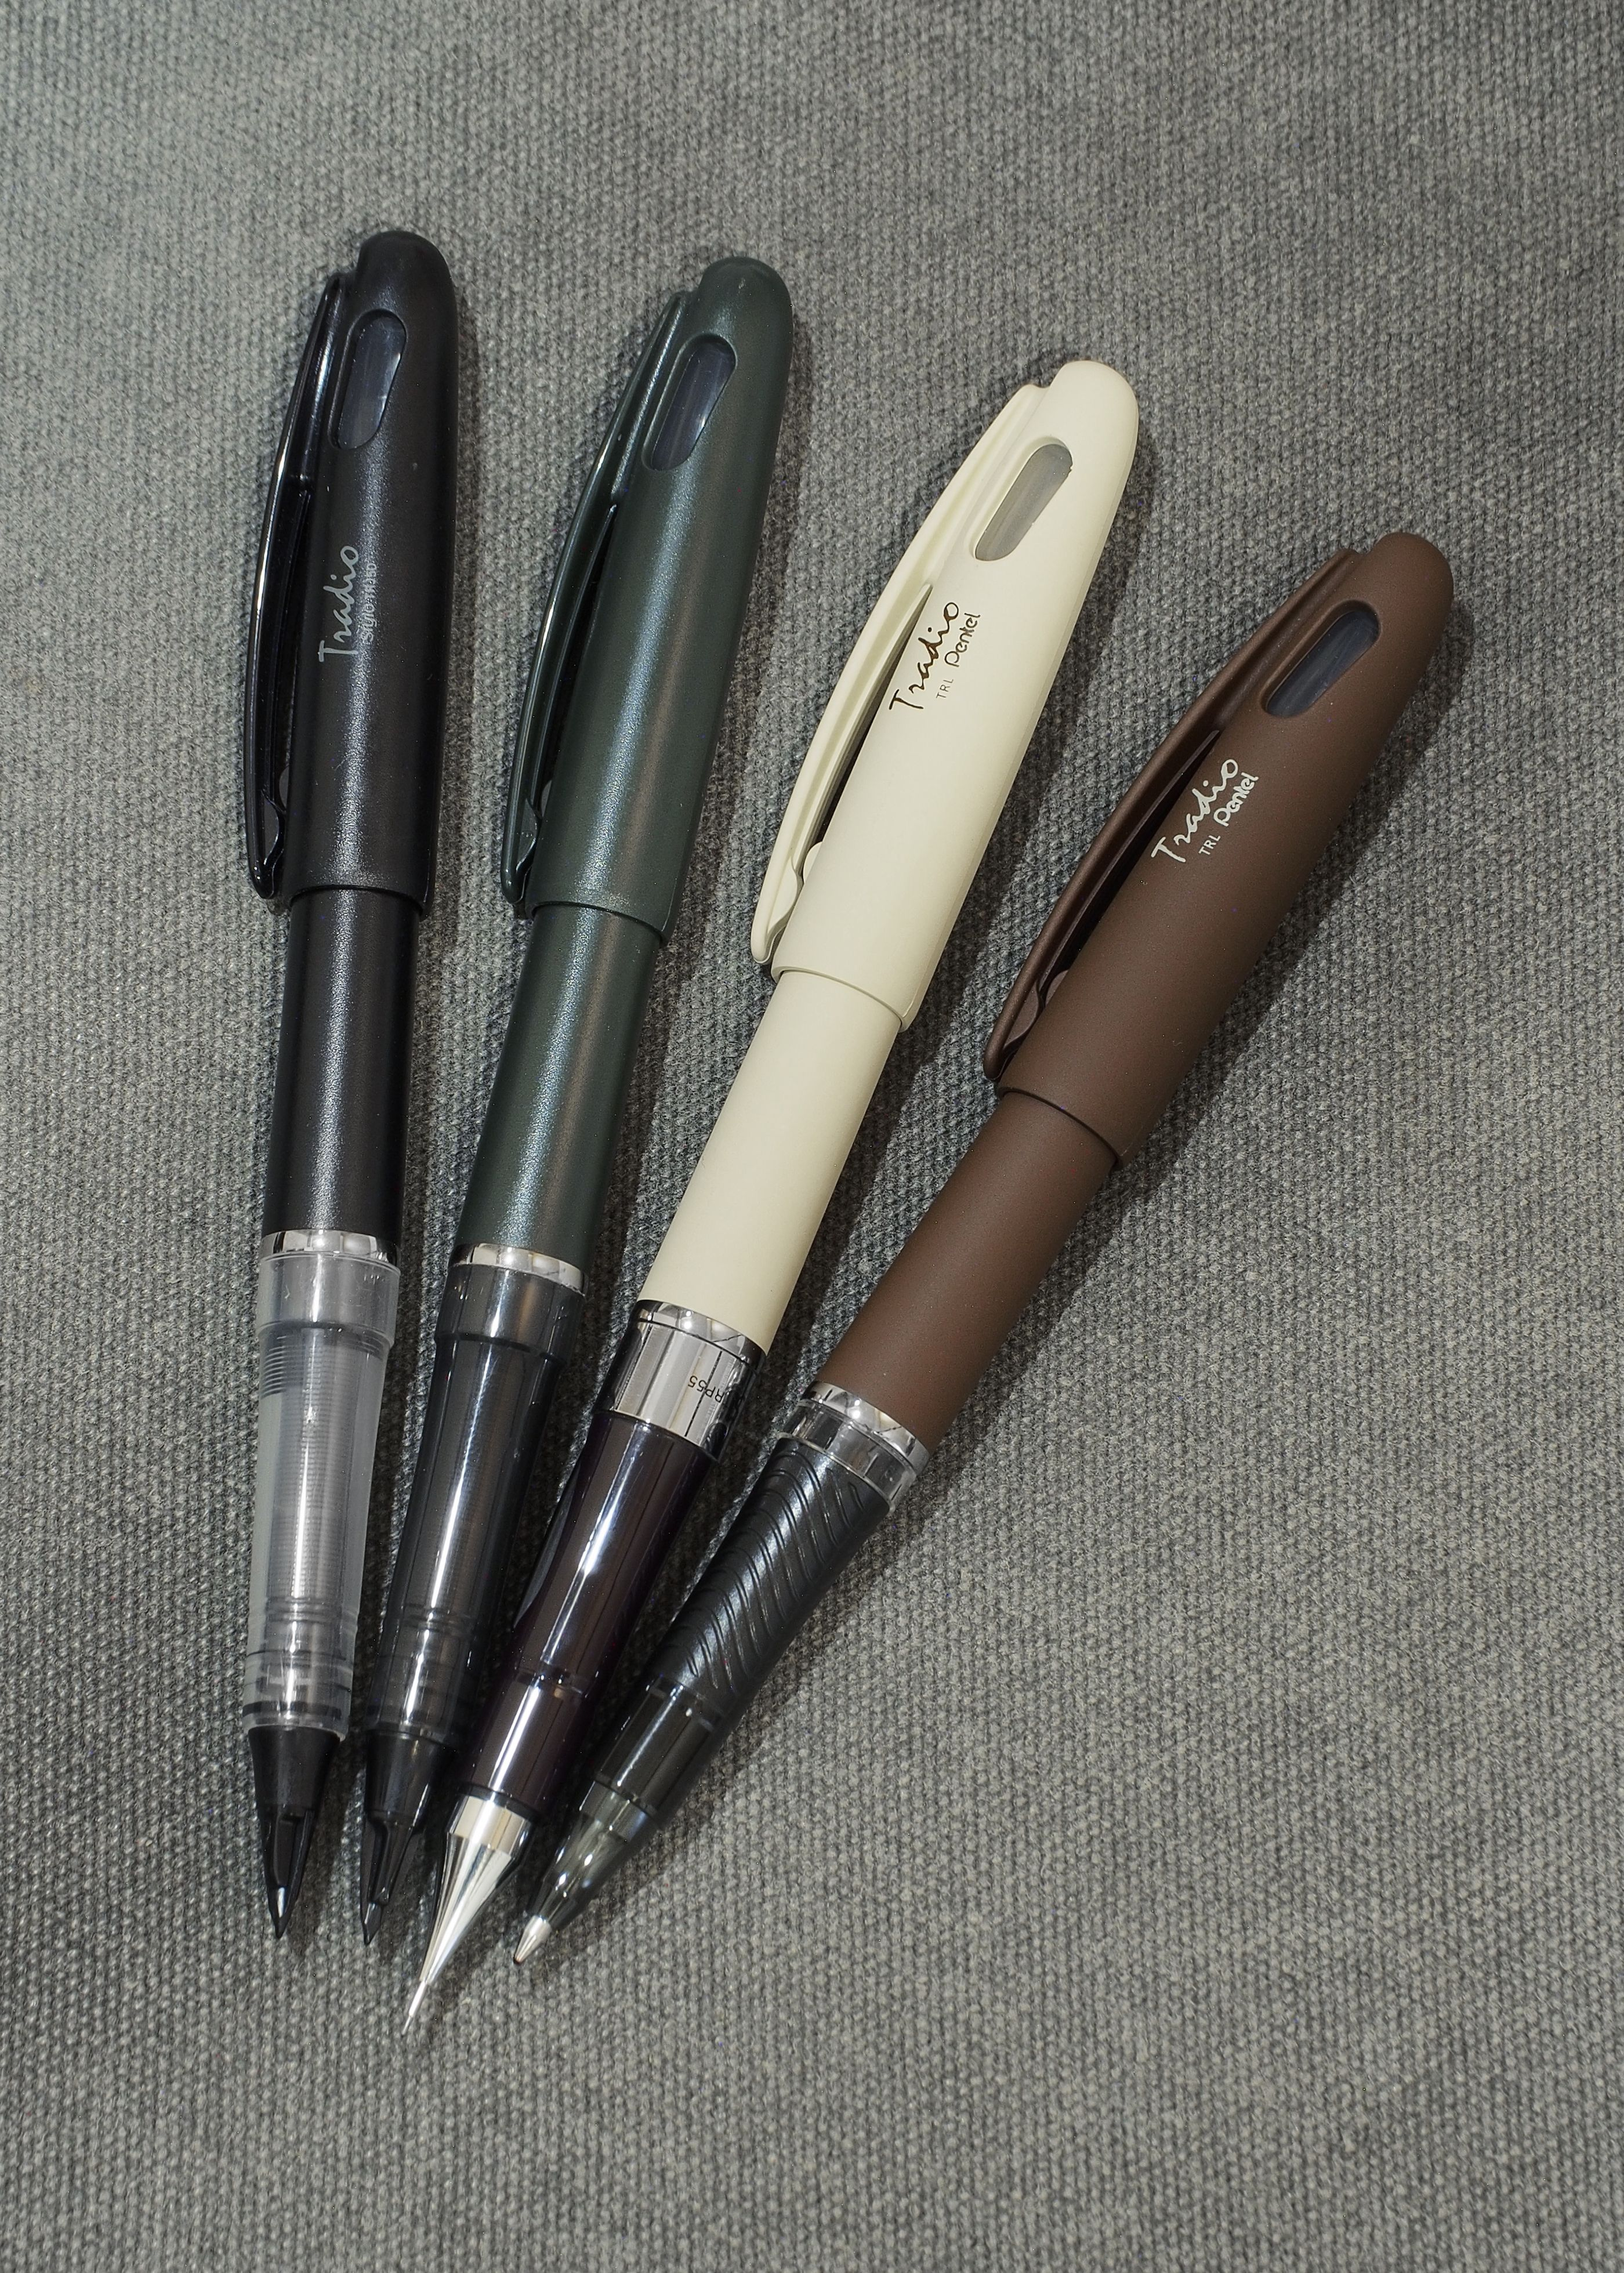 - Assorted Blue and Red Fountain Pens Pentel Tradio Stylo TRJ50 Black 3pcs